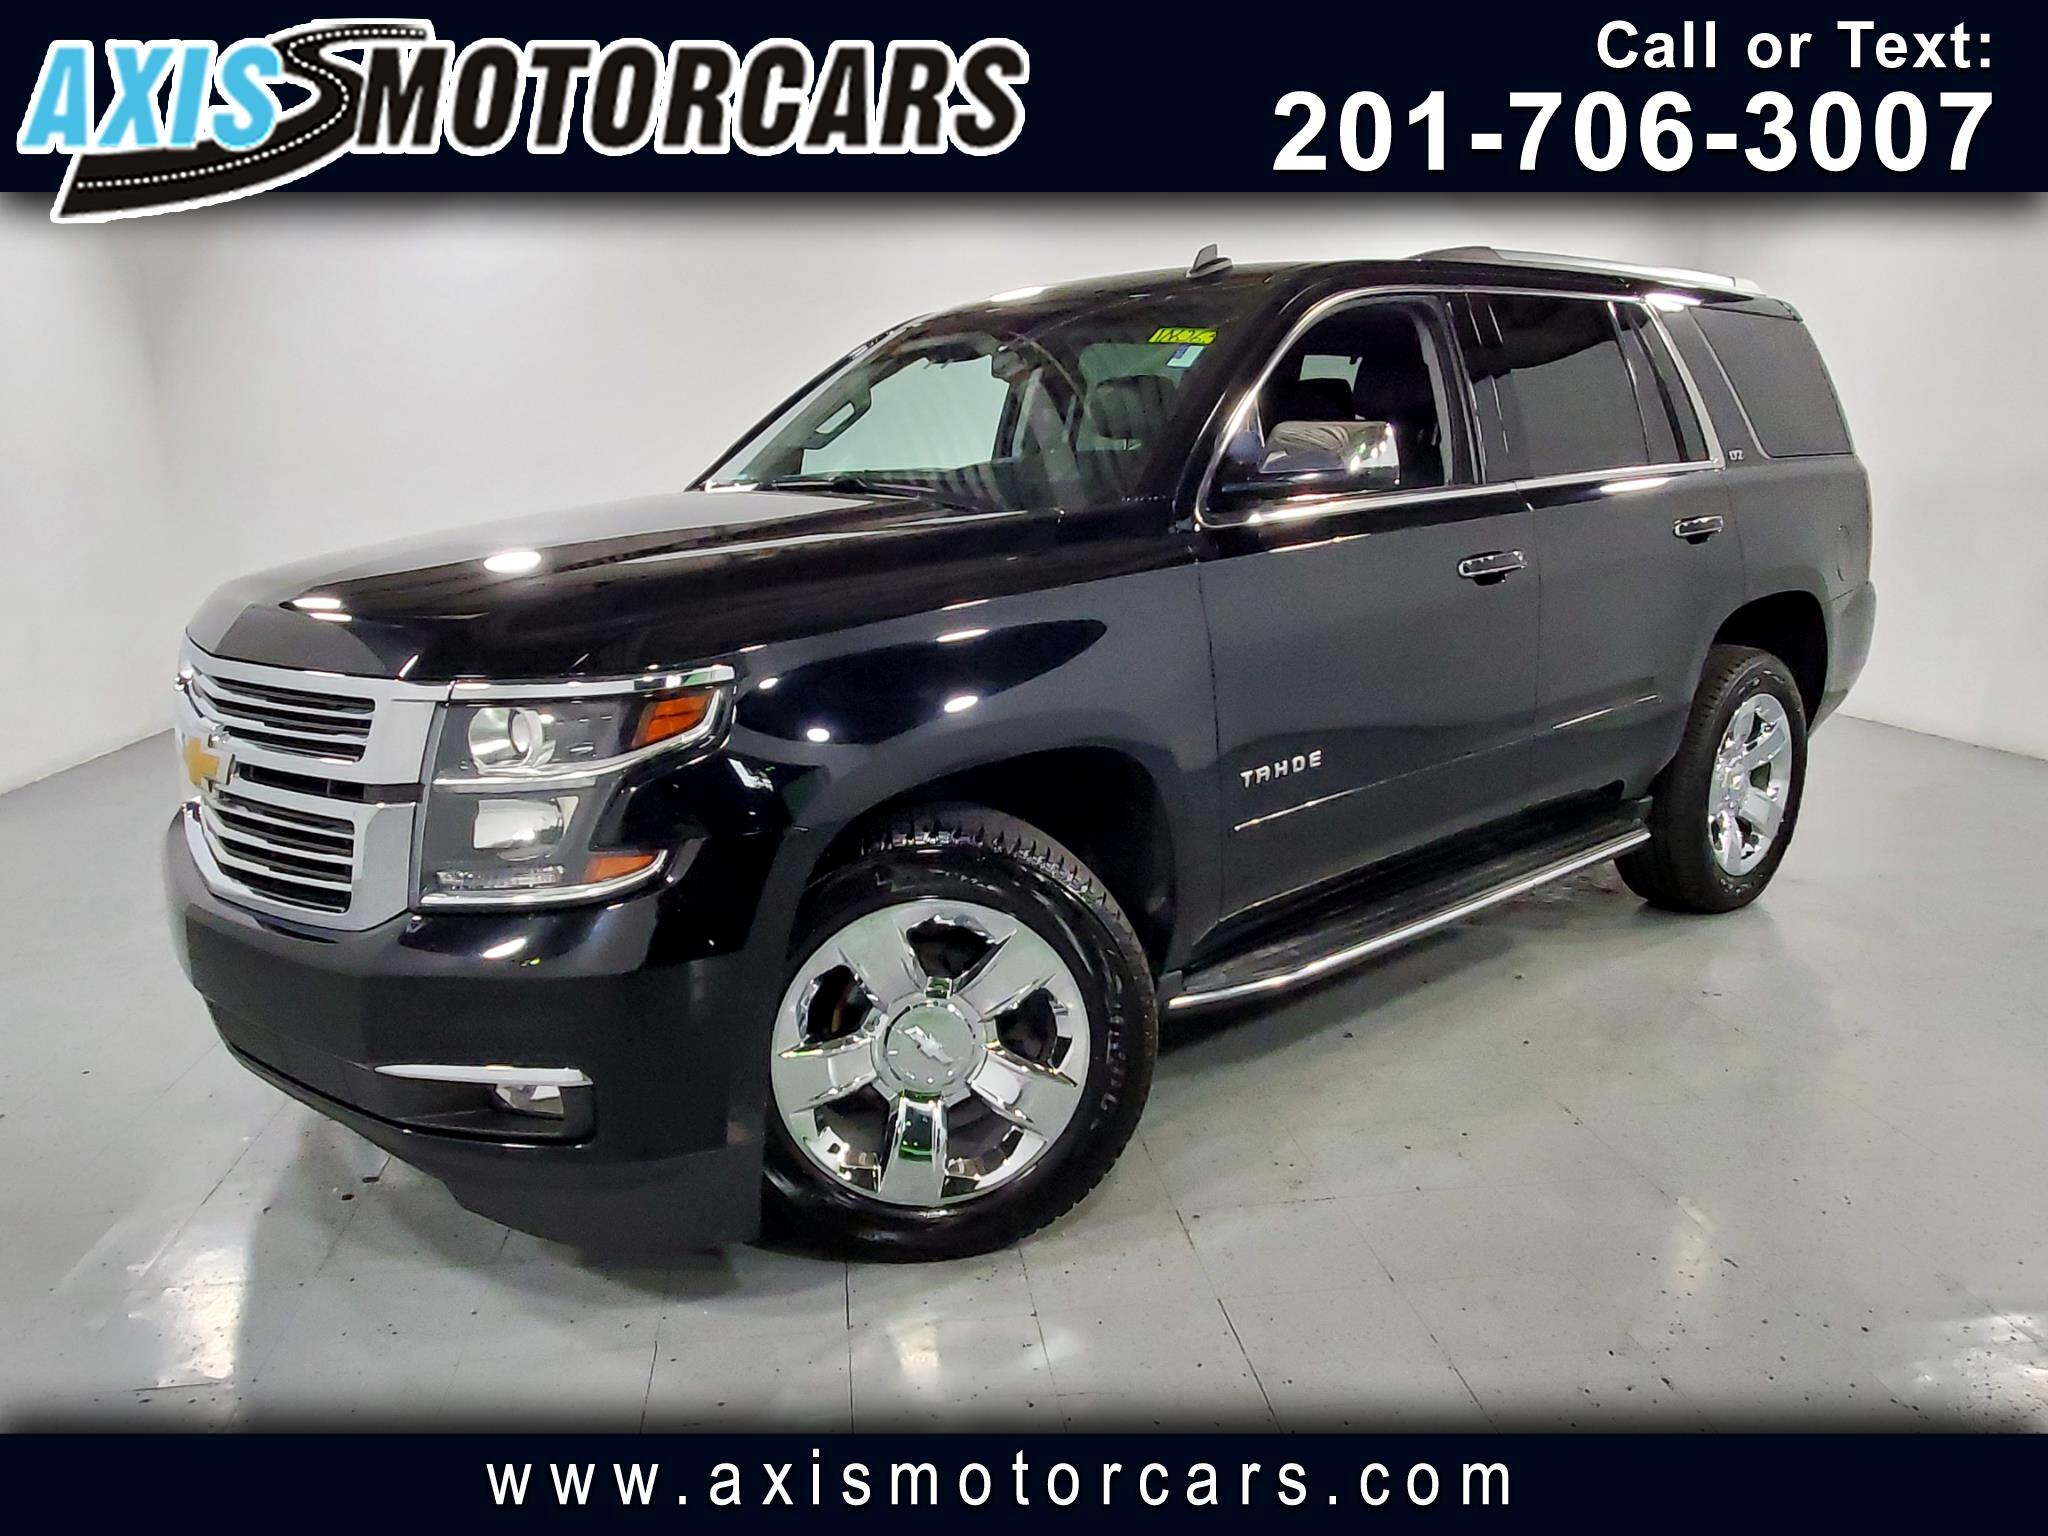 2015 Chevrolet Tahoe LTZ w/Bose Sound Rear Entertainment Navigation